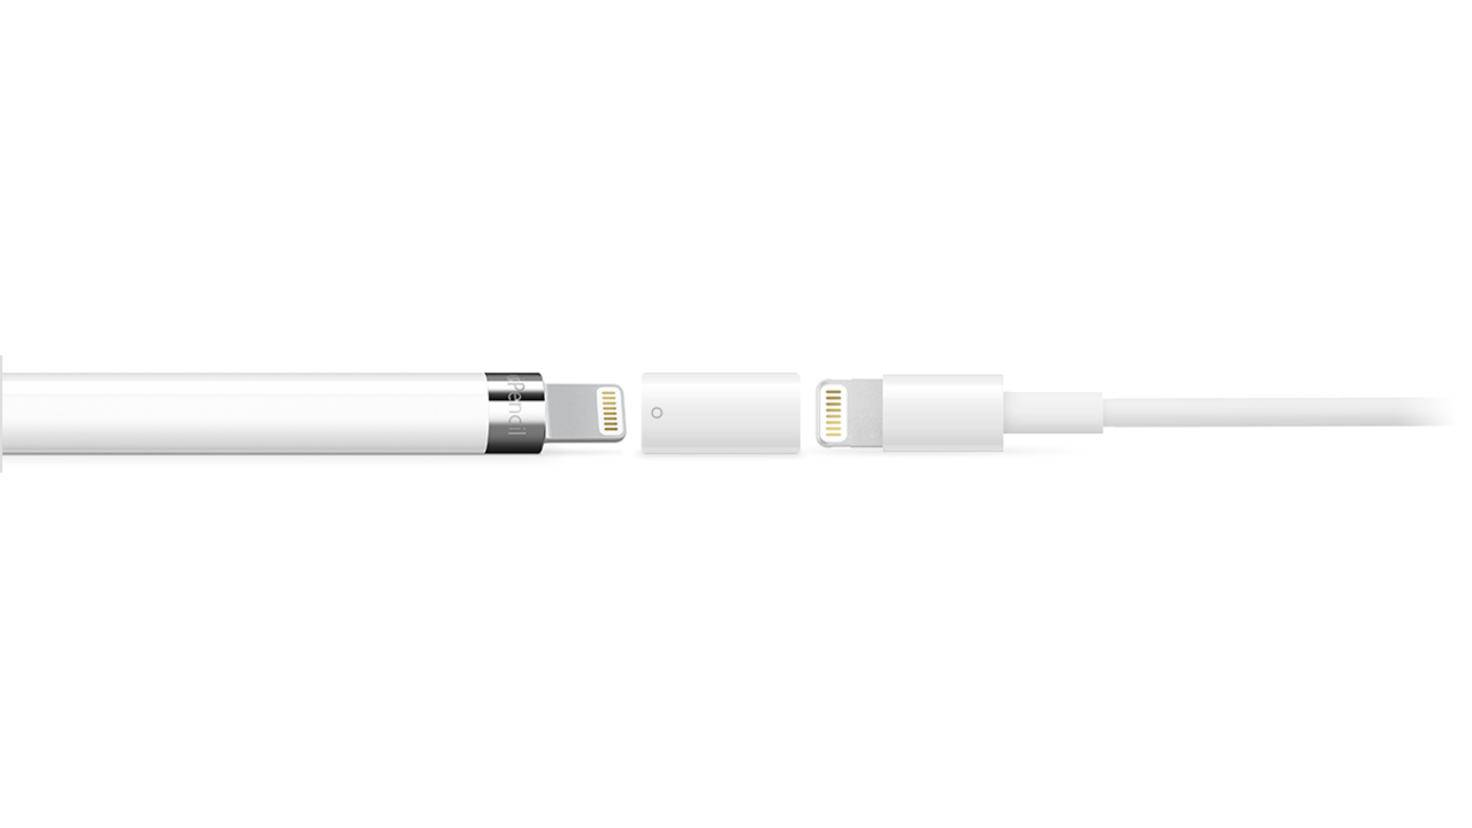 Charger l'Apple Pencil 1